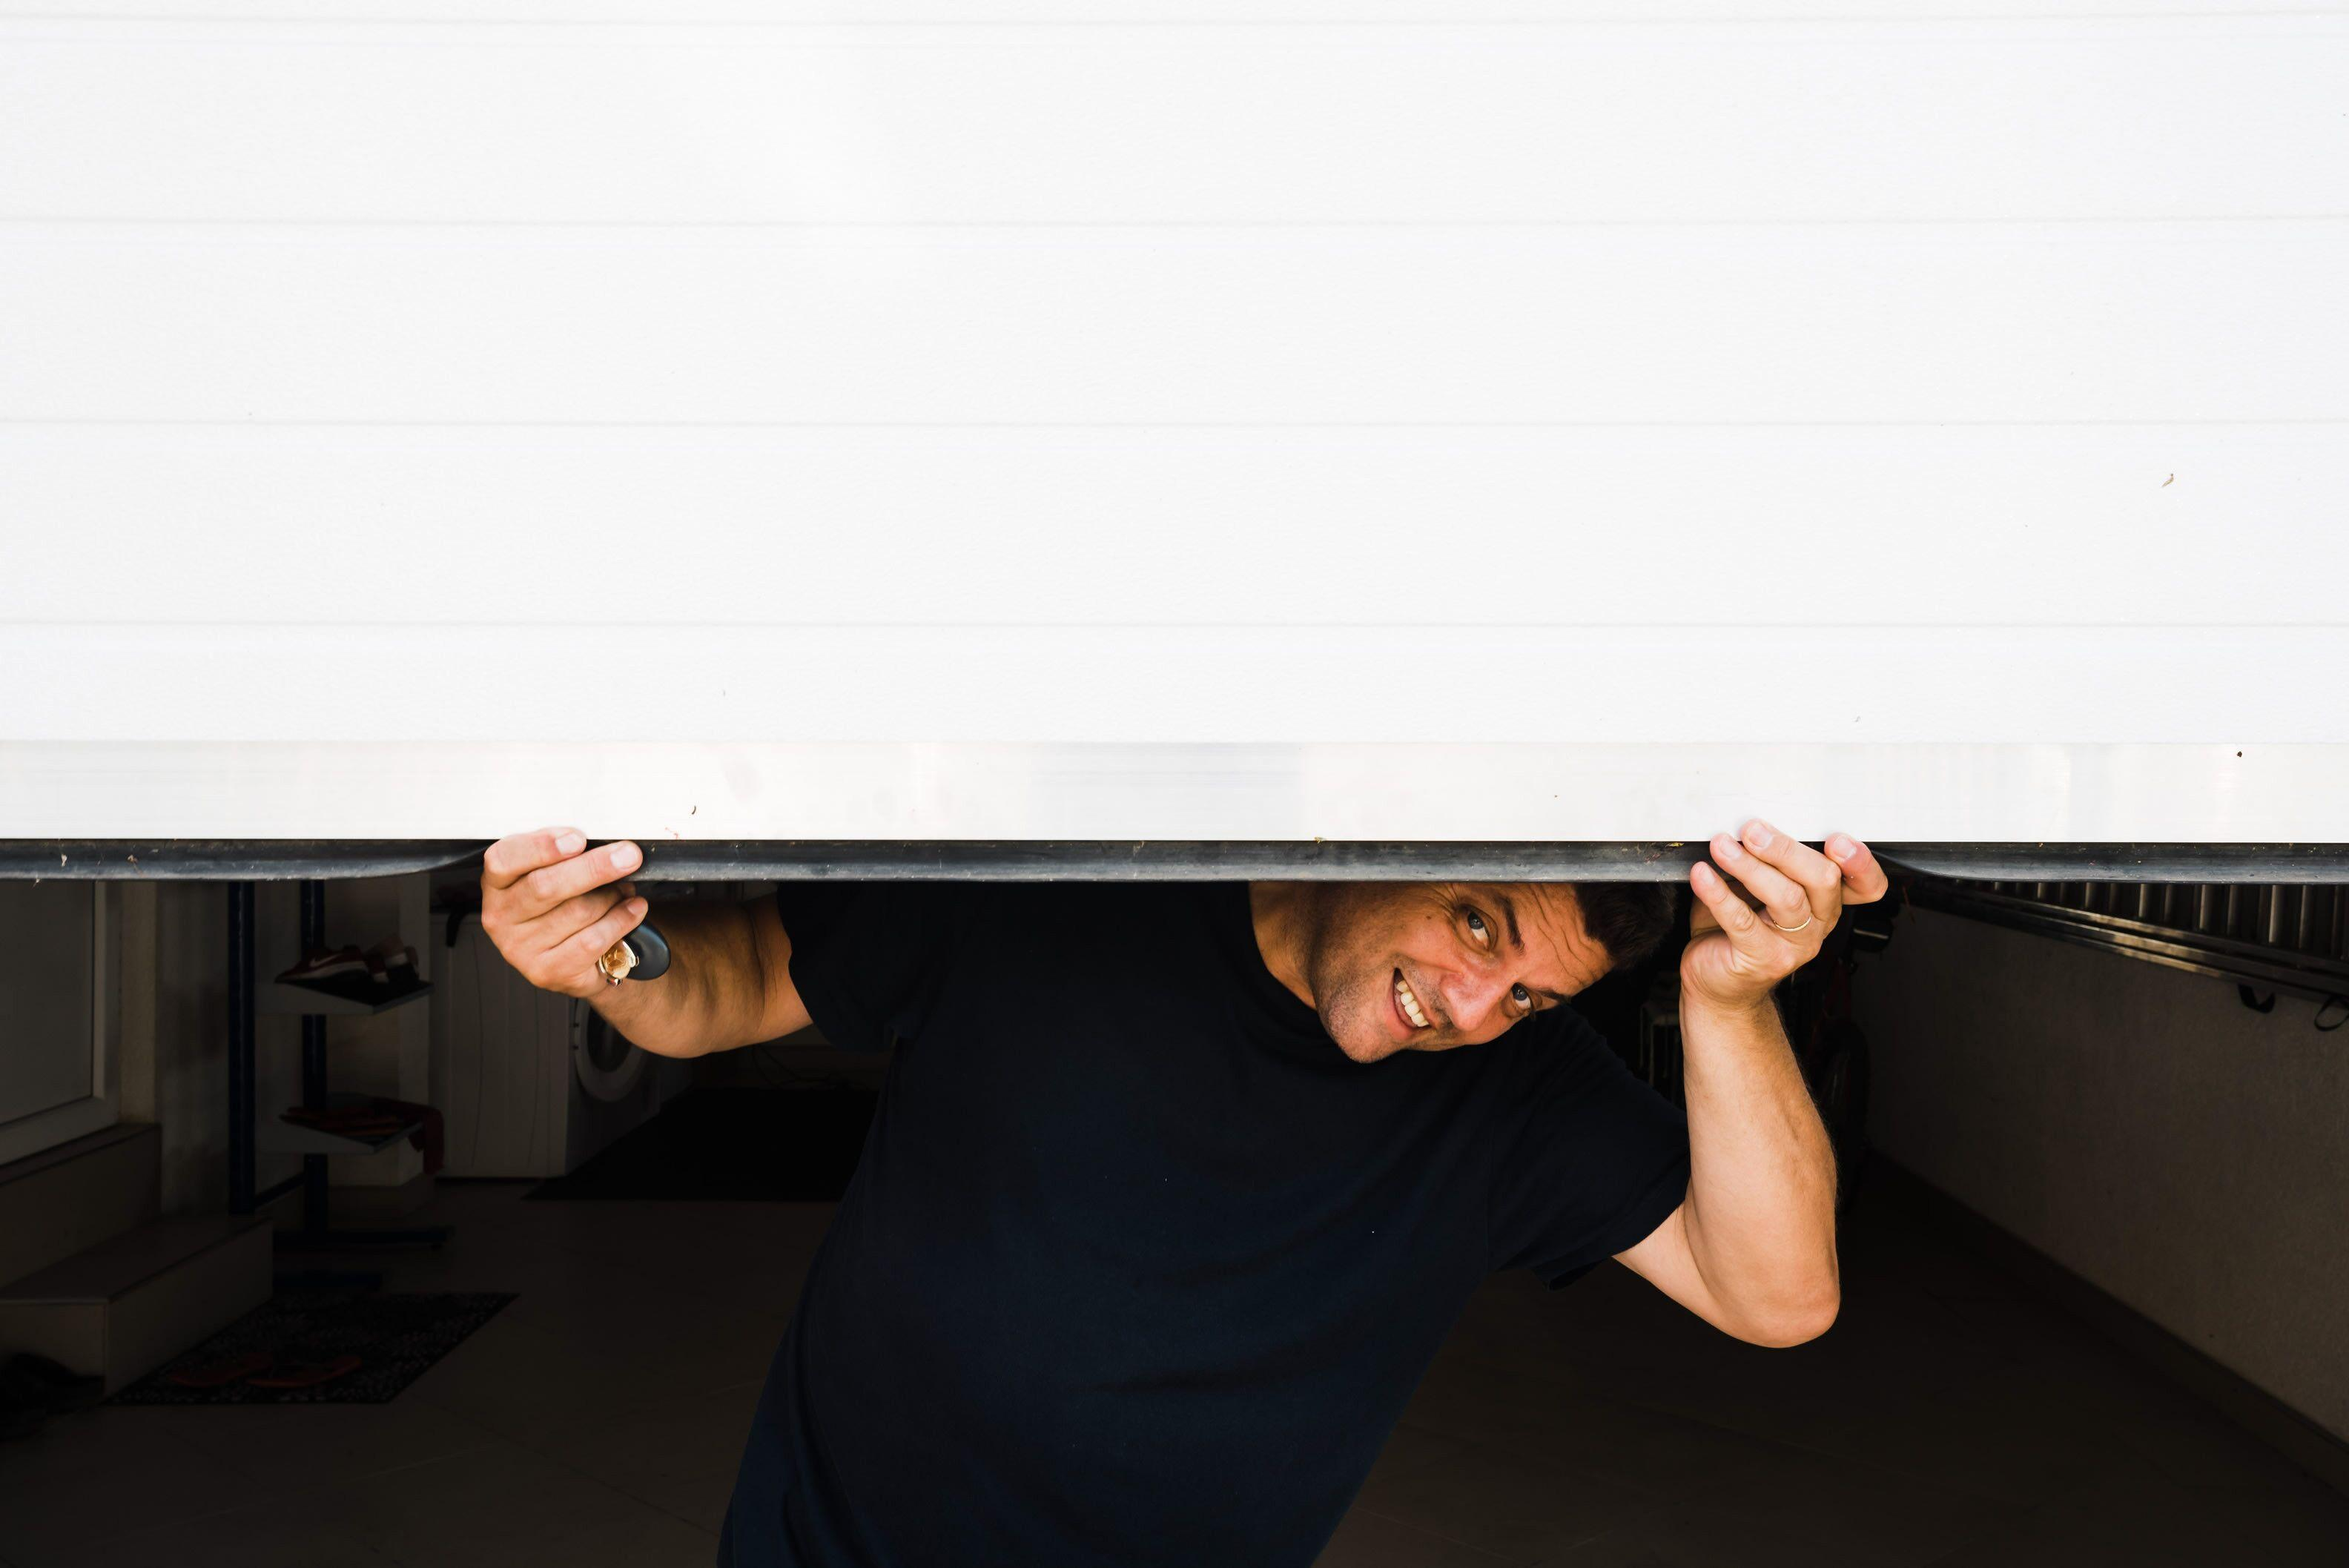 a man peaking out from his half-open and stuck garage door